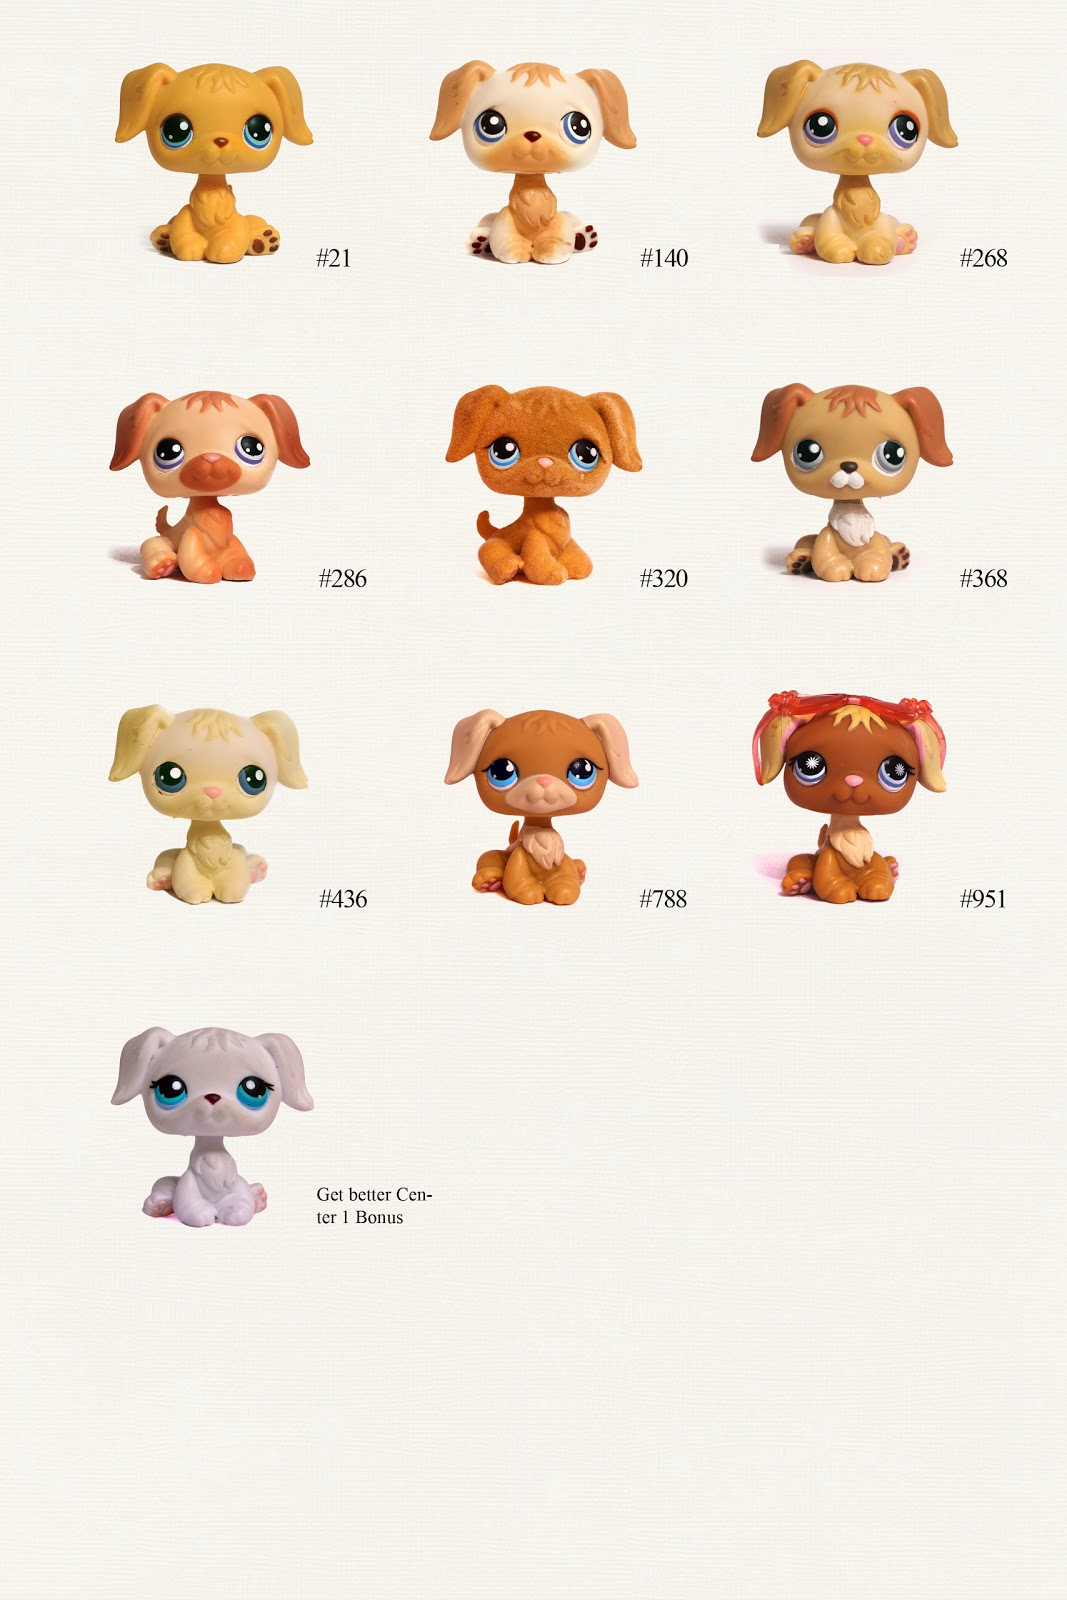 What Are The Breeds Of Cats In Lps